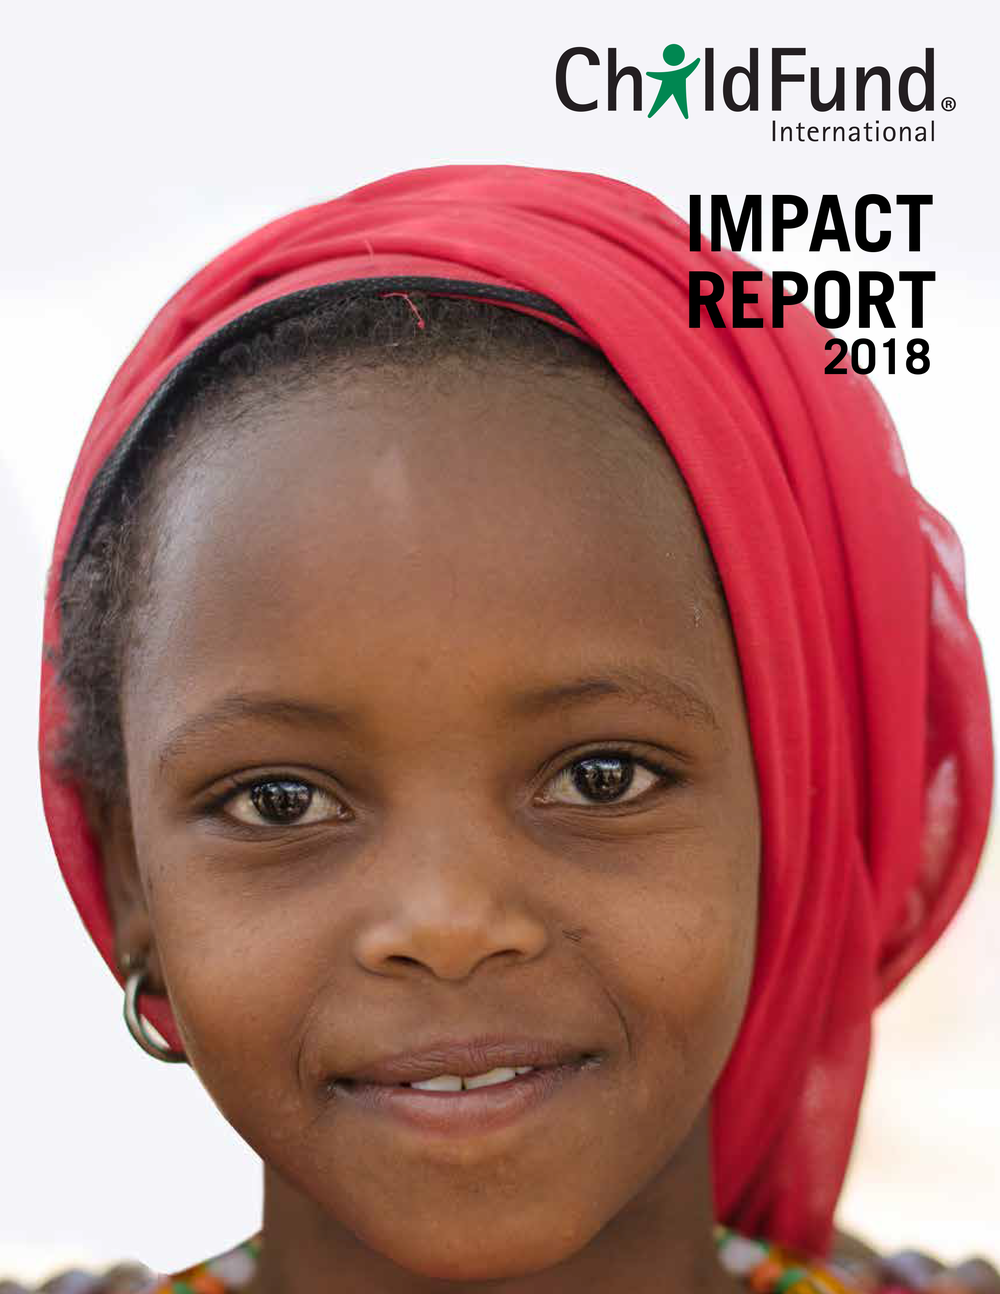 2018 Impact Report    (Print Version - contact mwoods@childfund.org for printer bleeds)